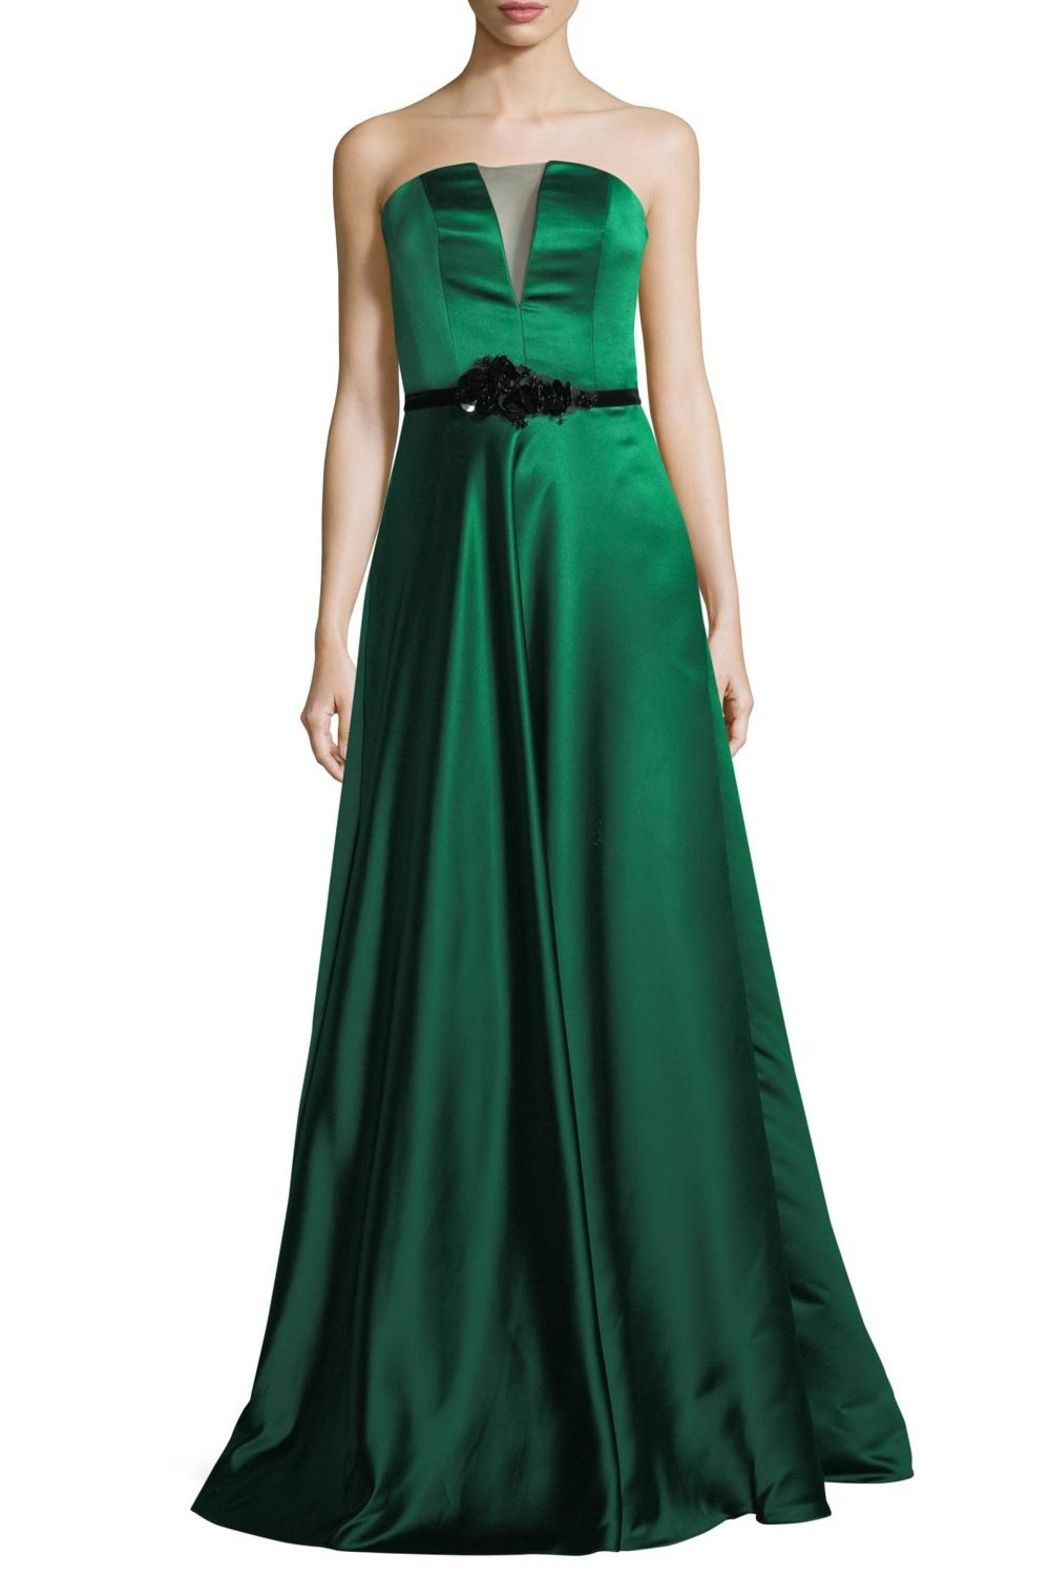 Theia Strapless Evening Gown | Gowns, Bodice and Red carpet